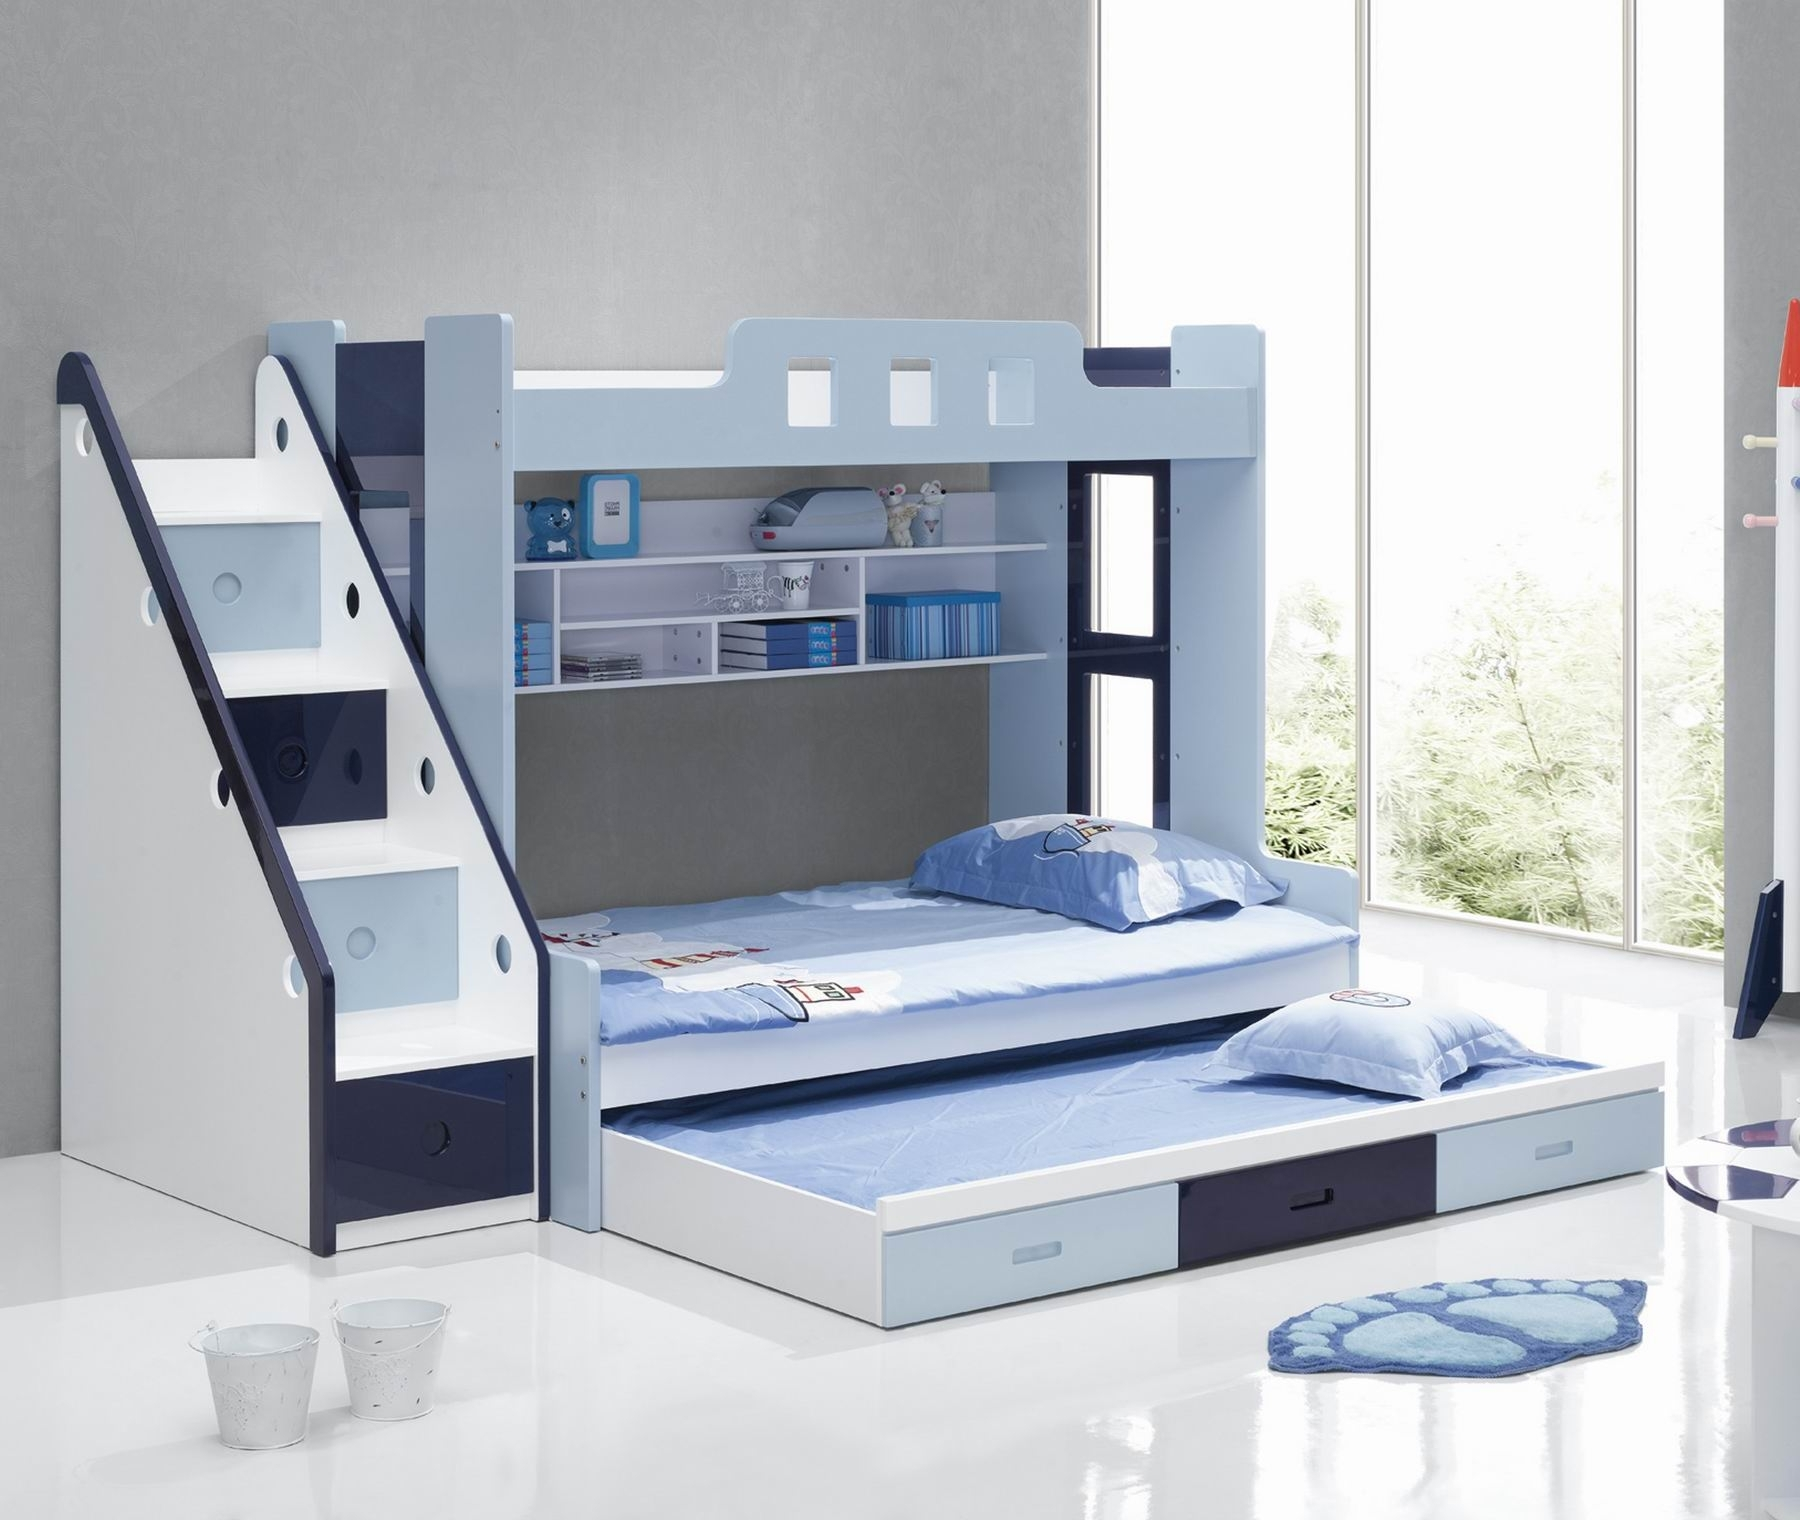 Low Bunk Beds With Storage | Modern Bunk Beds | Modern Bunk Beds